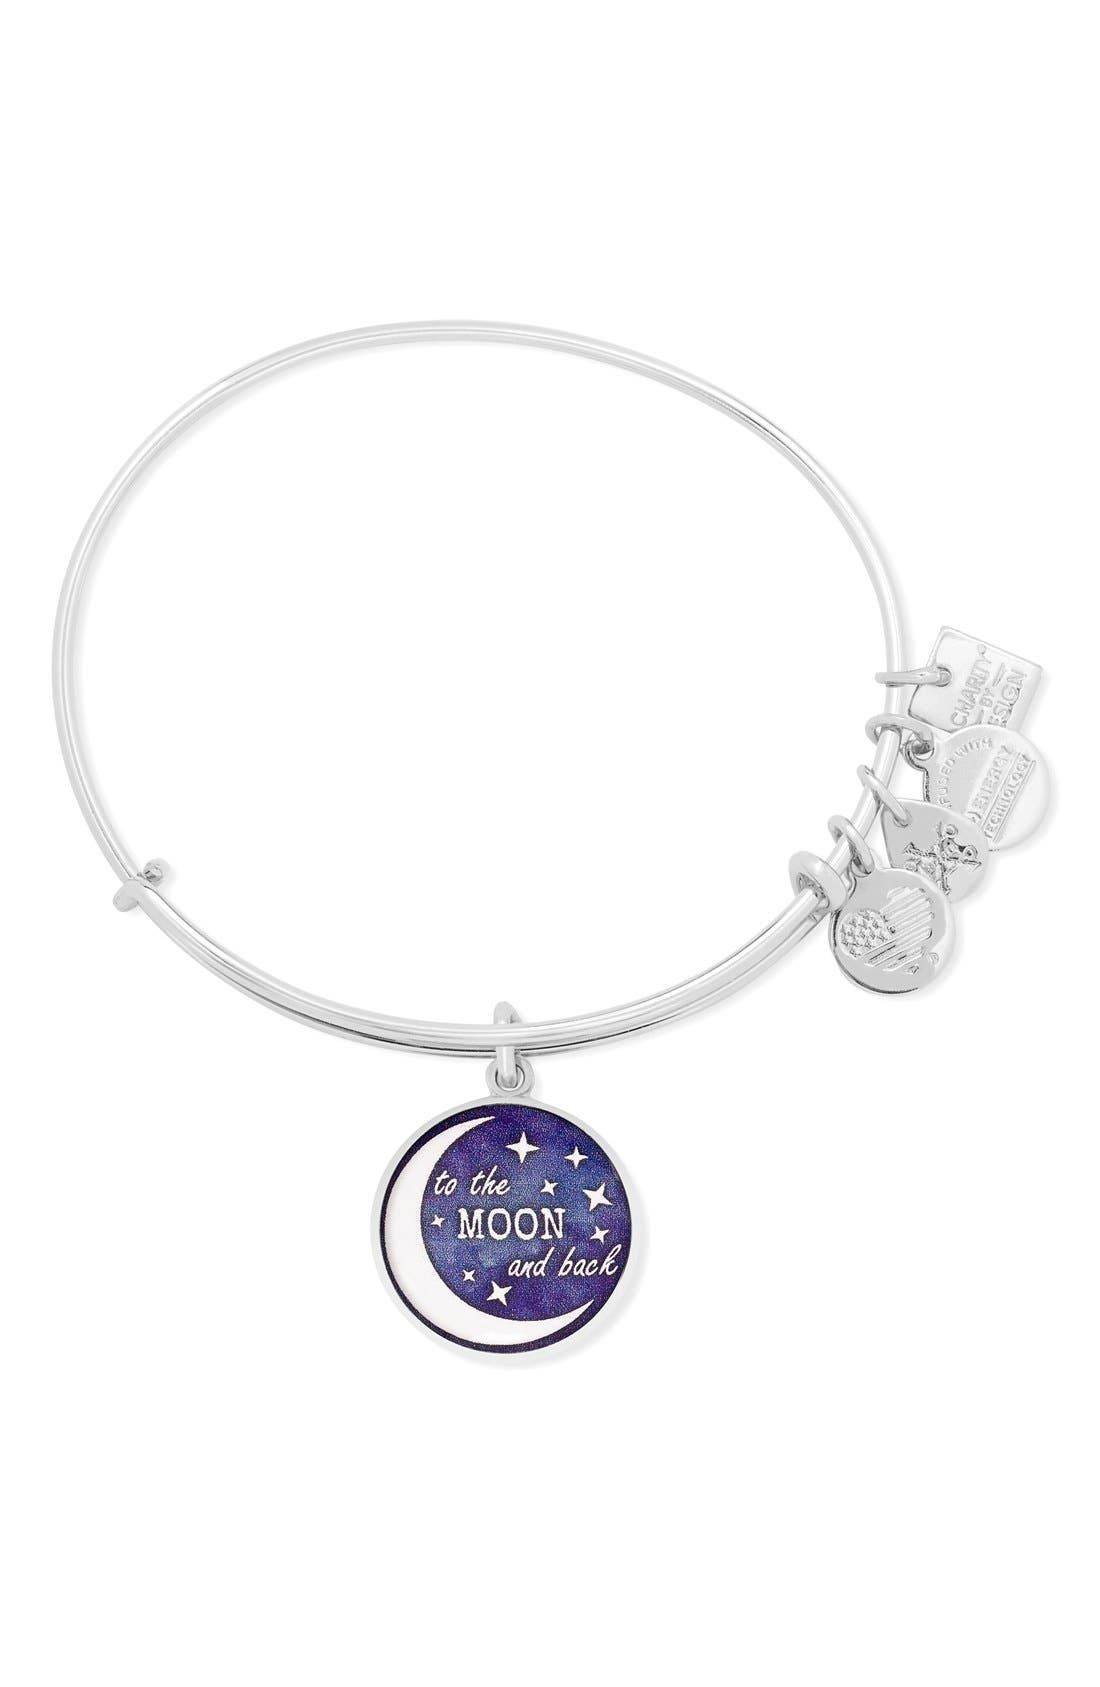 Stellar Love 'To the Moon and Back' Adjustable Wire Bangle,                             Main thumbnail 1, color,                             Silver